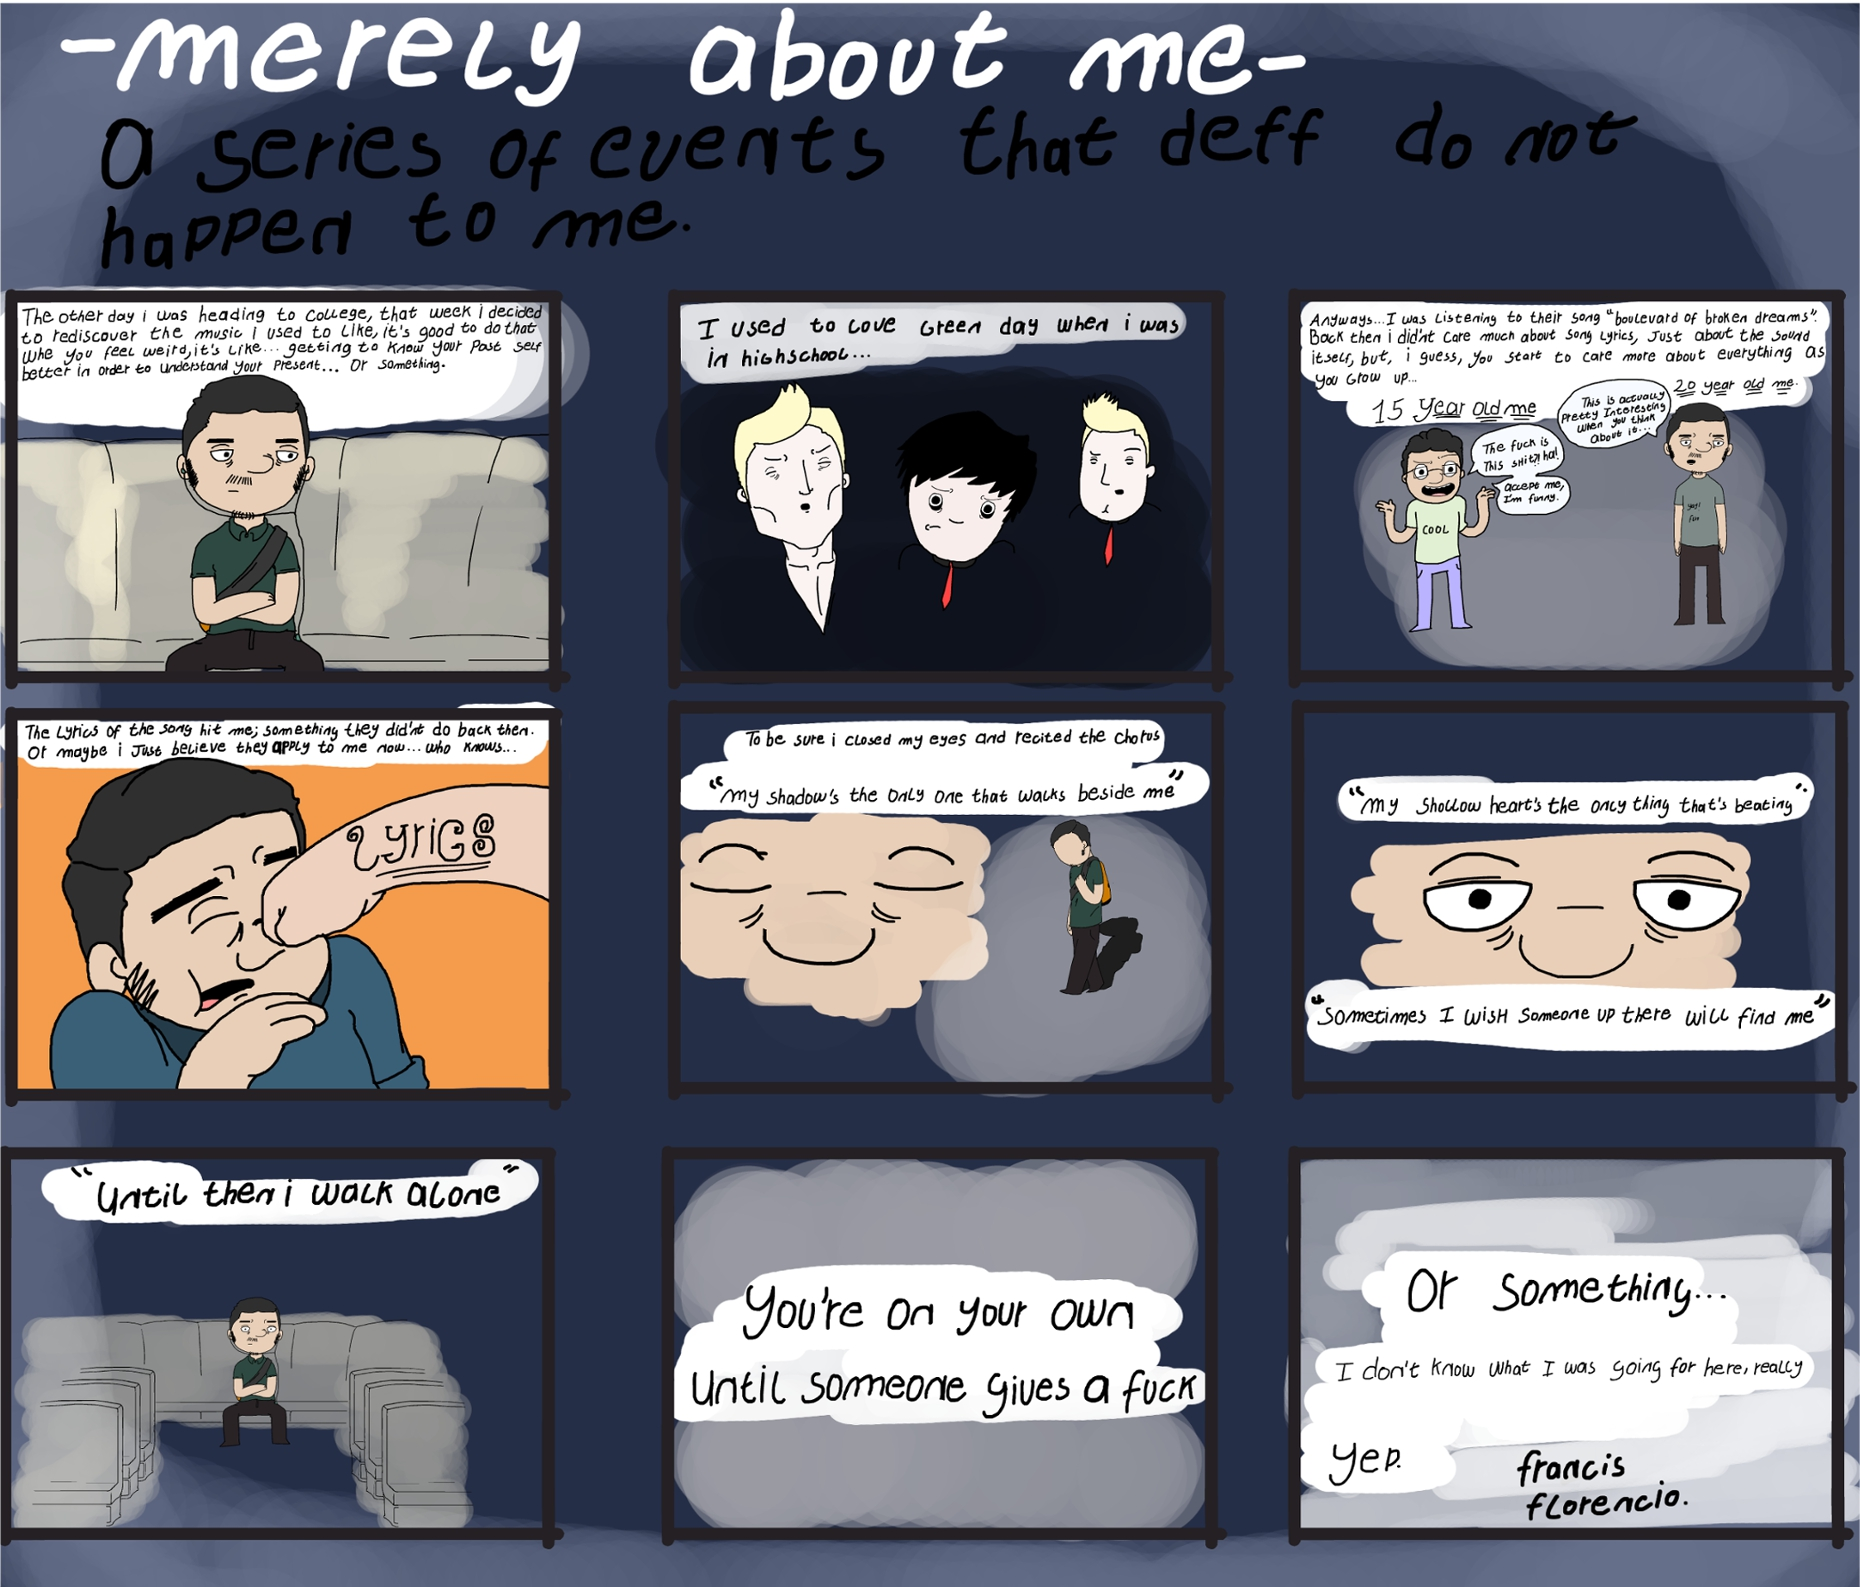 [Comic] Merely about me - 2